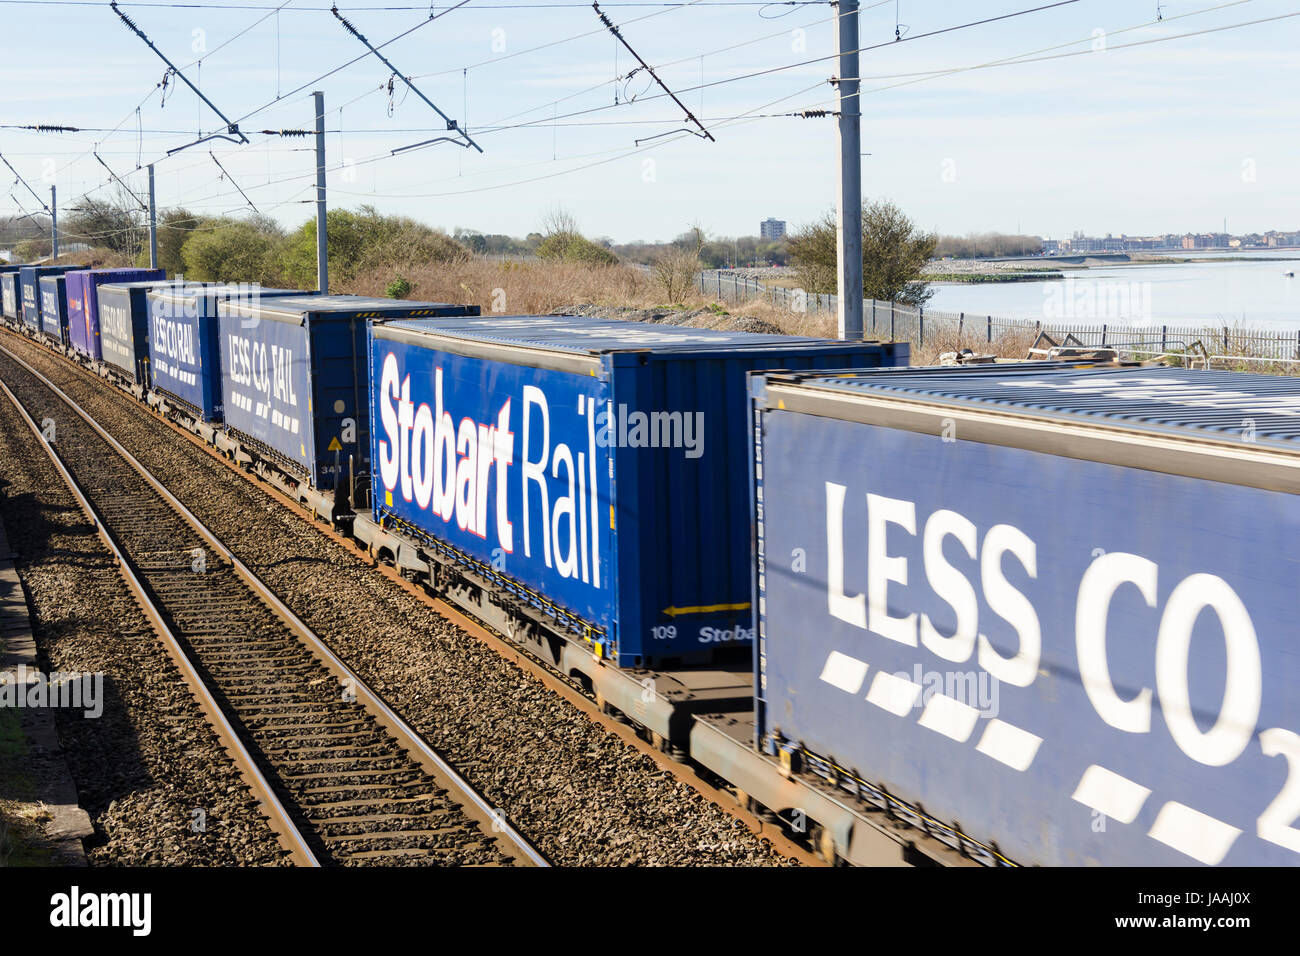 'Less CO2 Rail' container train heading north on the West Coast Main Line railway at Hest Bank, Lancashire. - Stock Image